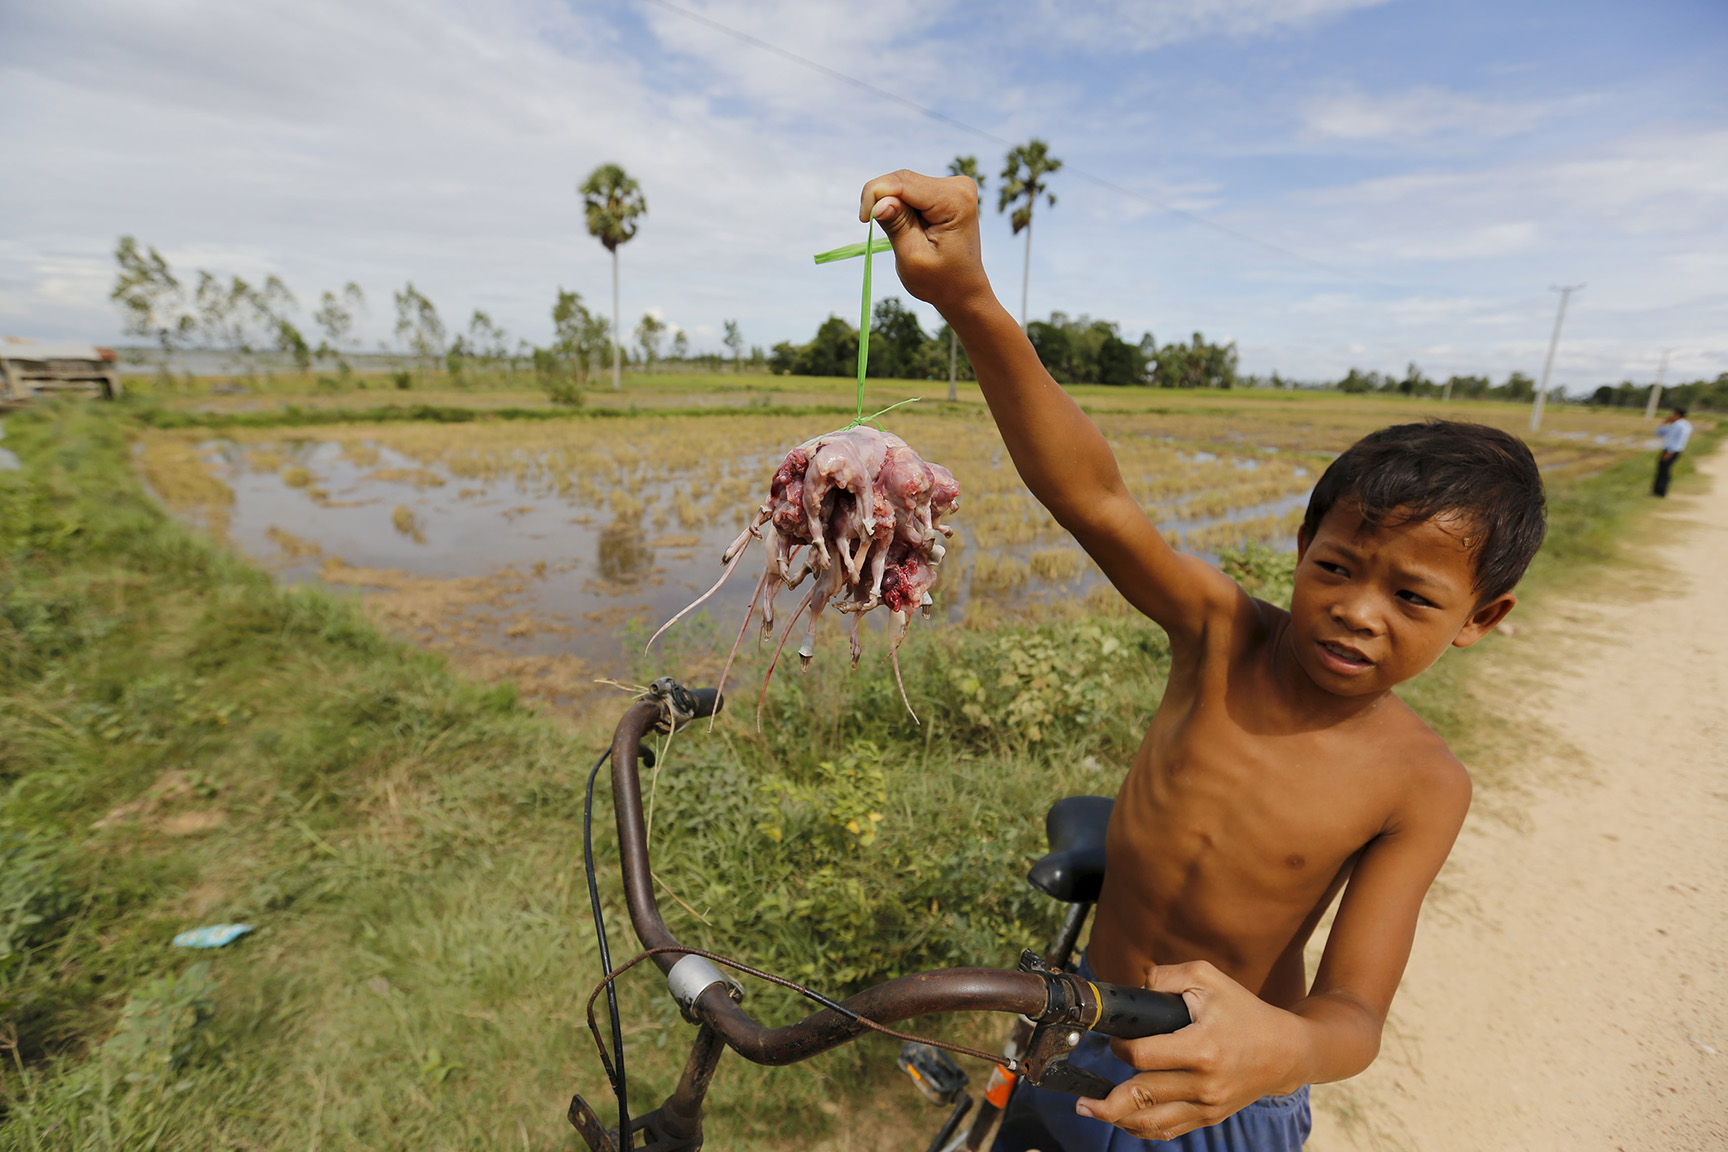 A Cambodian child poses with rats he skinned after catching them in a rice field in Takeo province